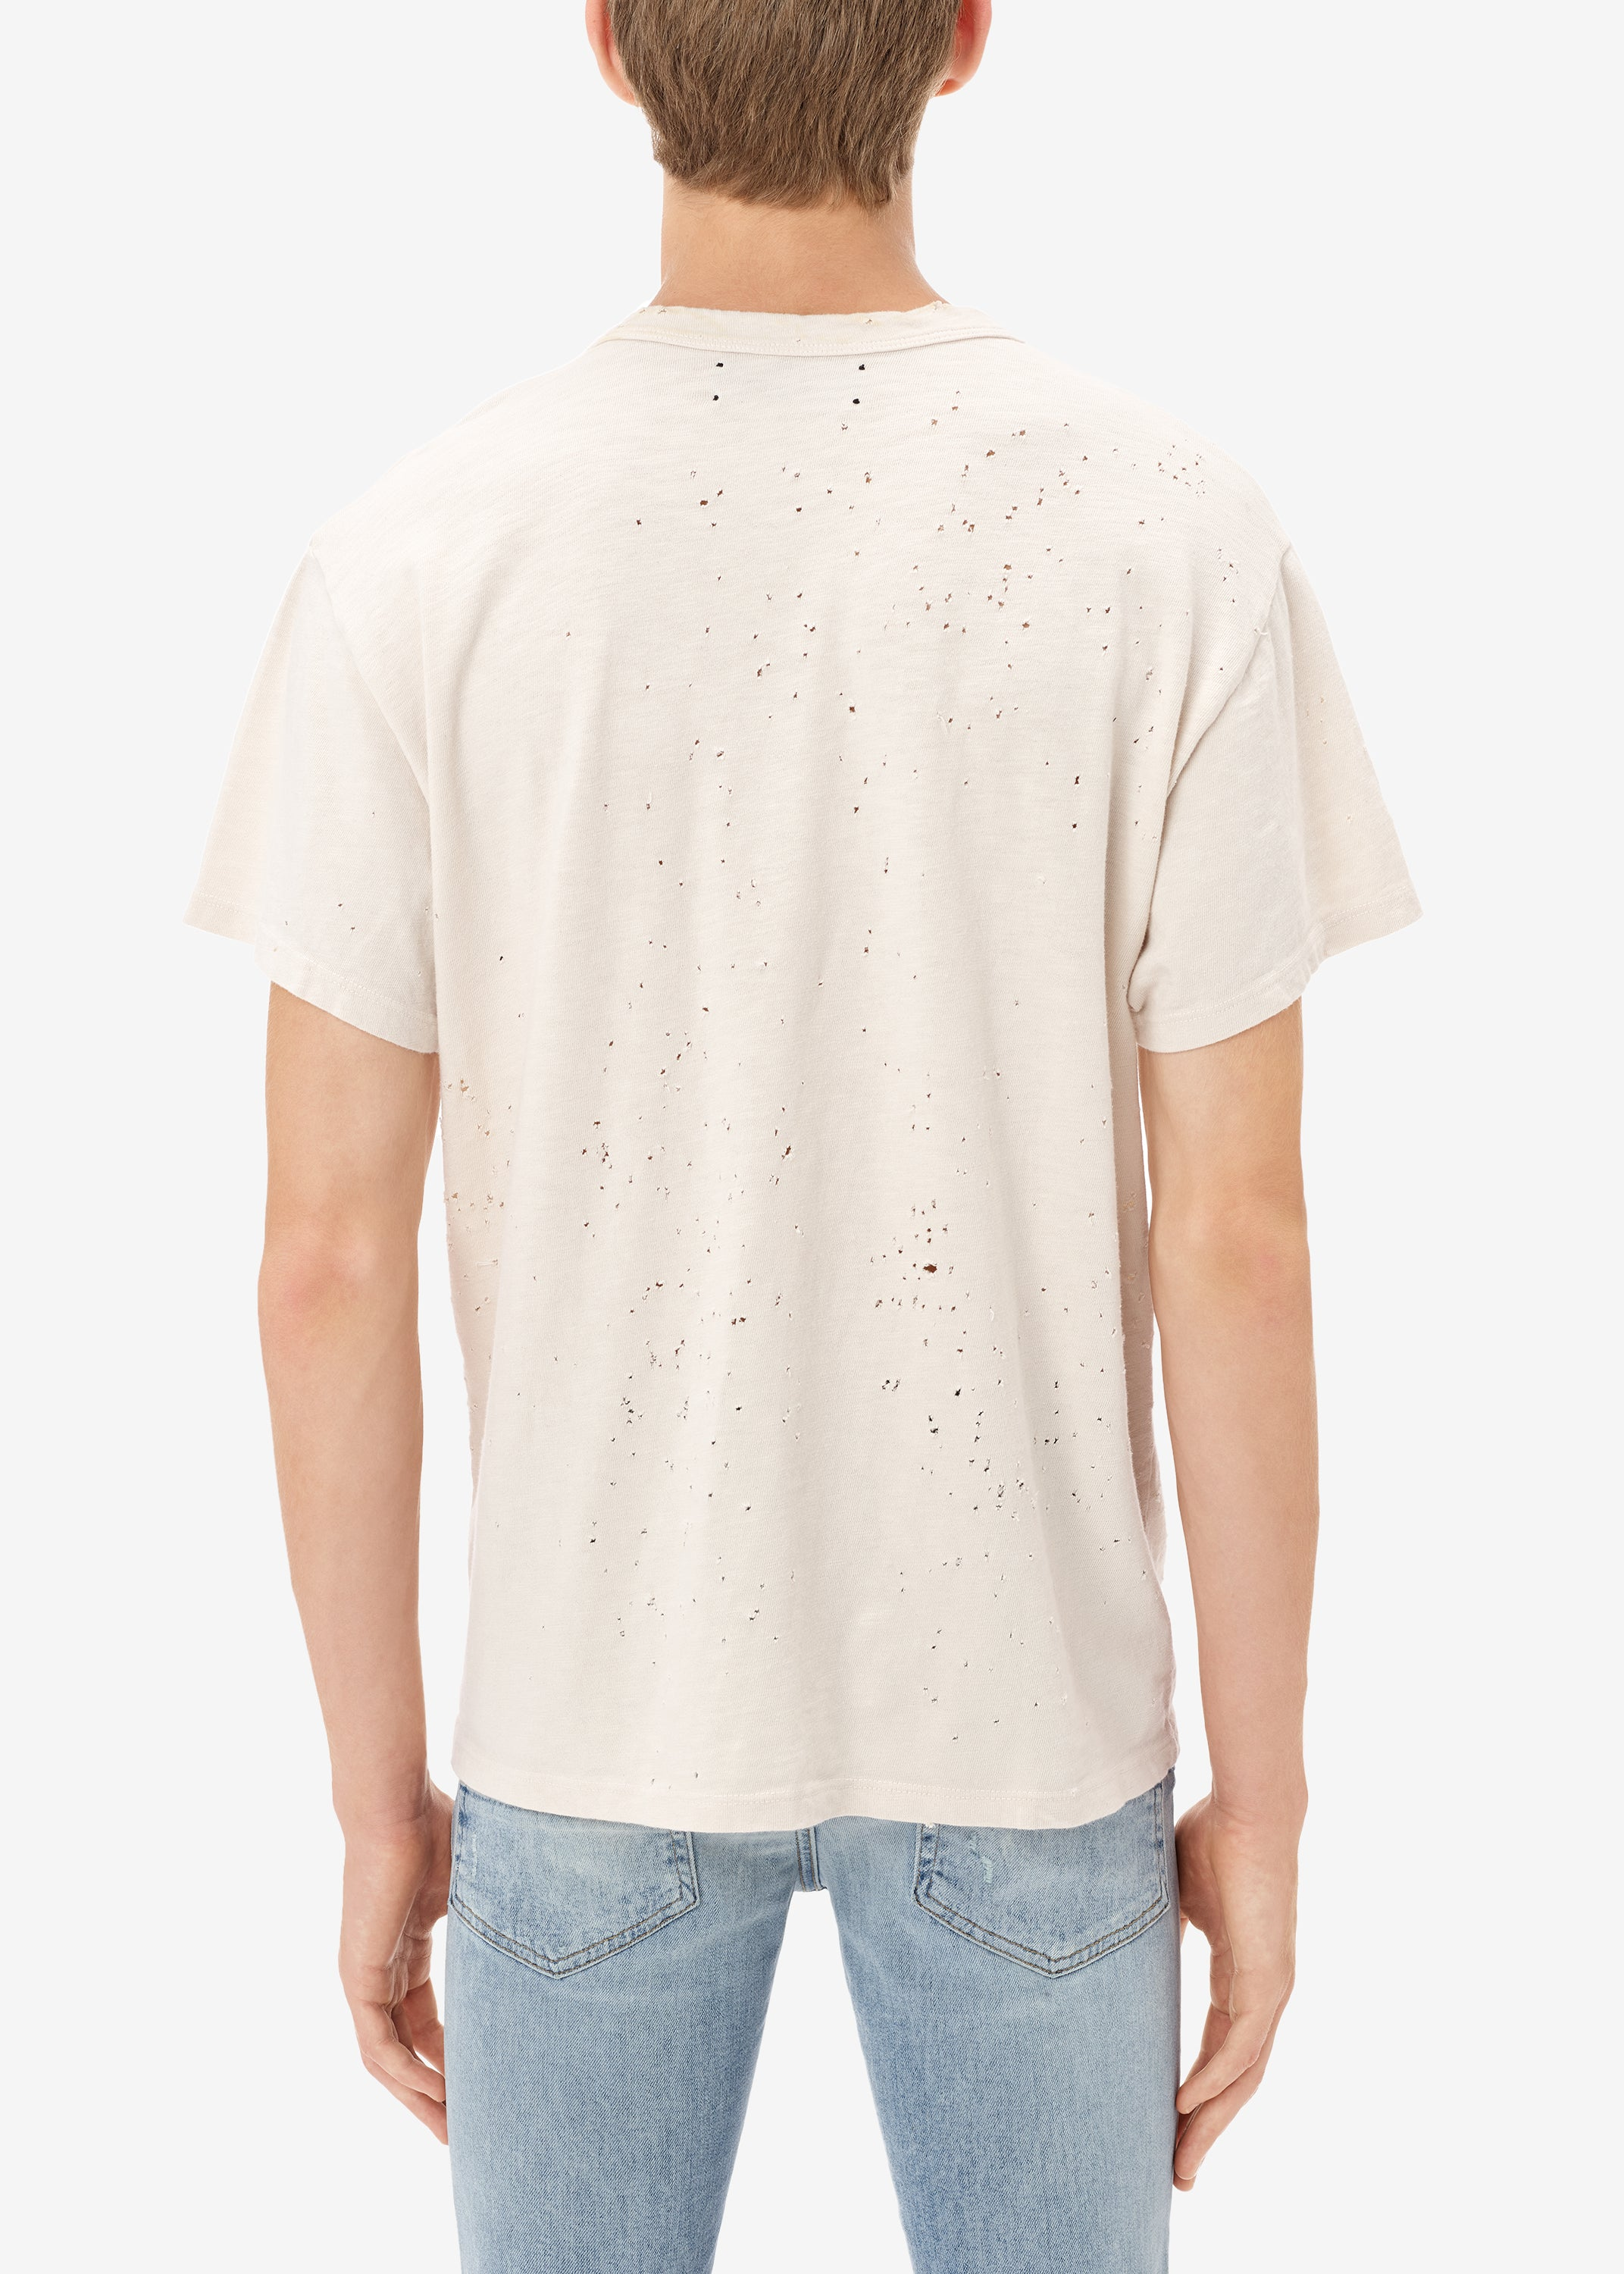 exclusive-shotgun-tee-alabaster-image-4